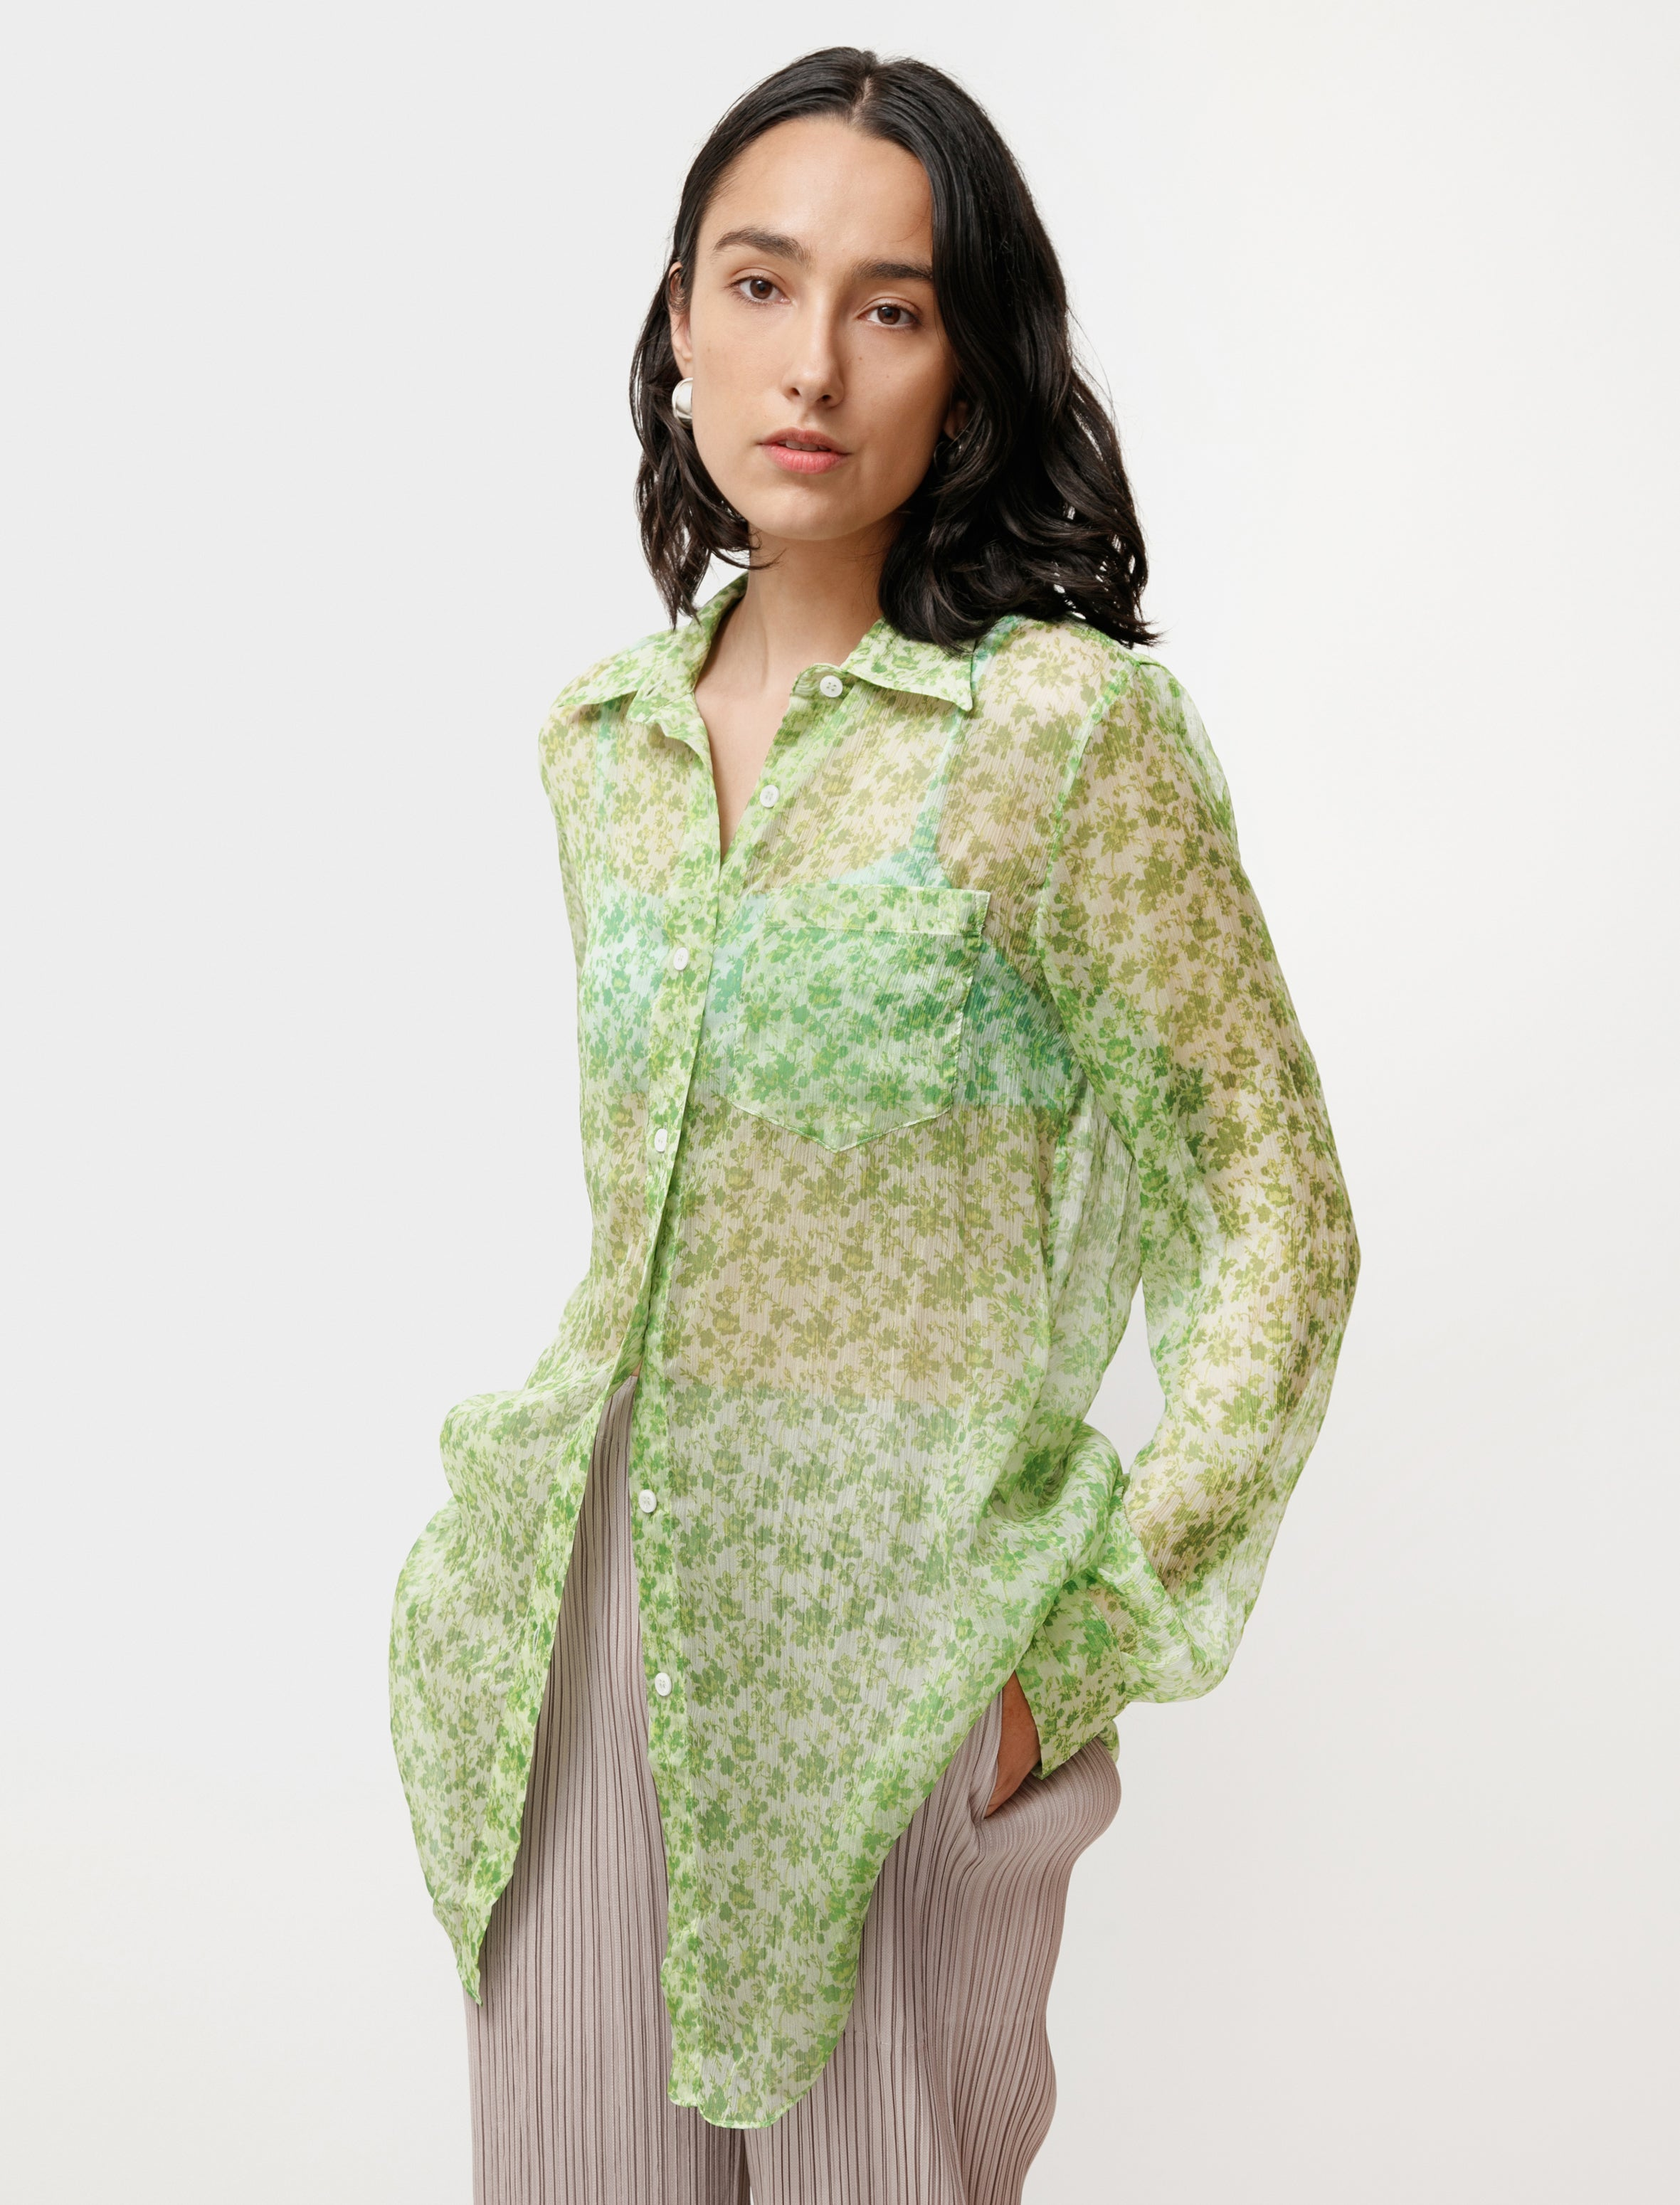 Acne Studios Sheer Chiffon Shirt Fern Green